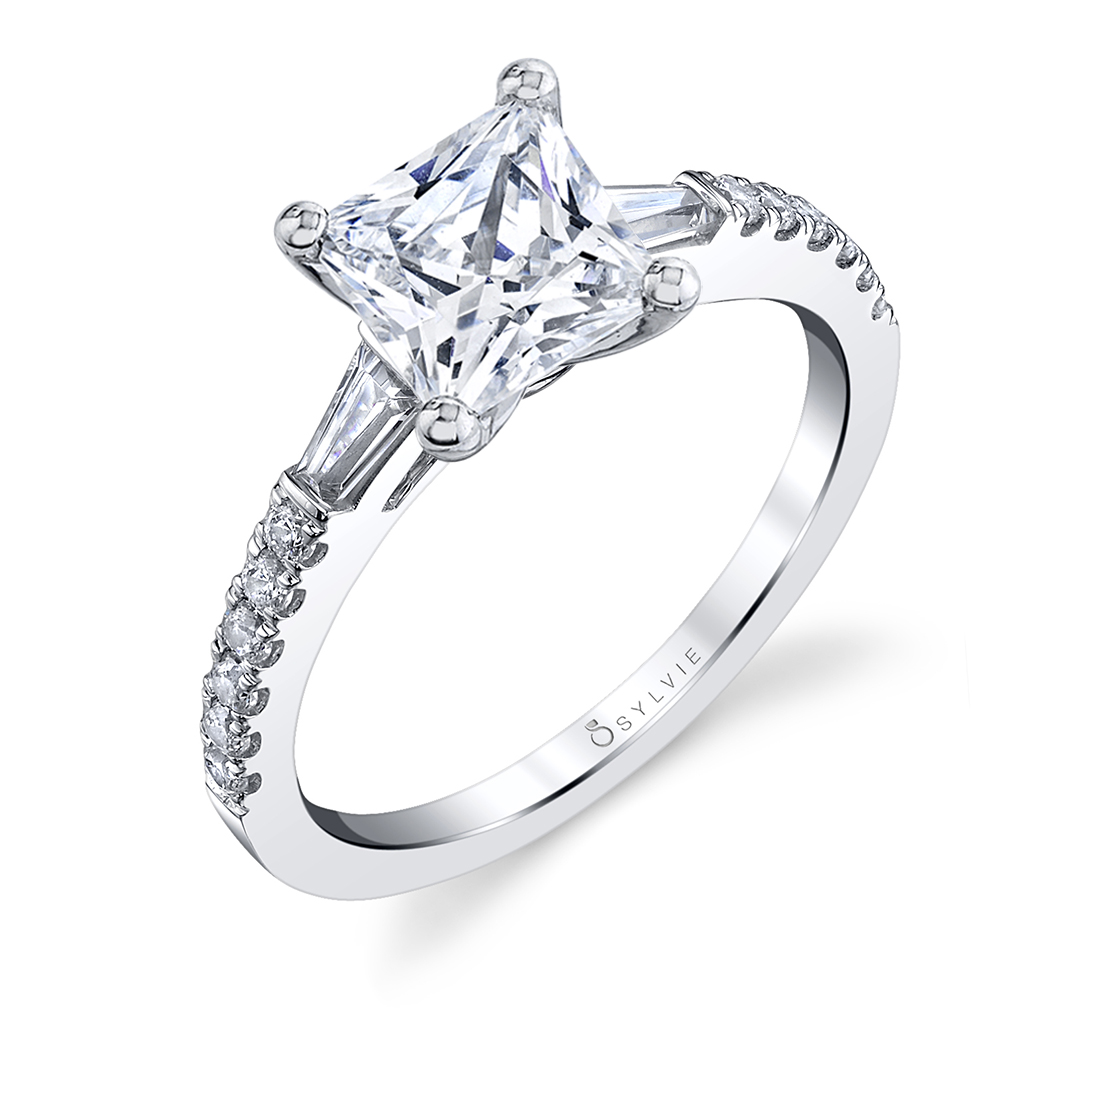 Princess cut engagement ring with baguettes